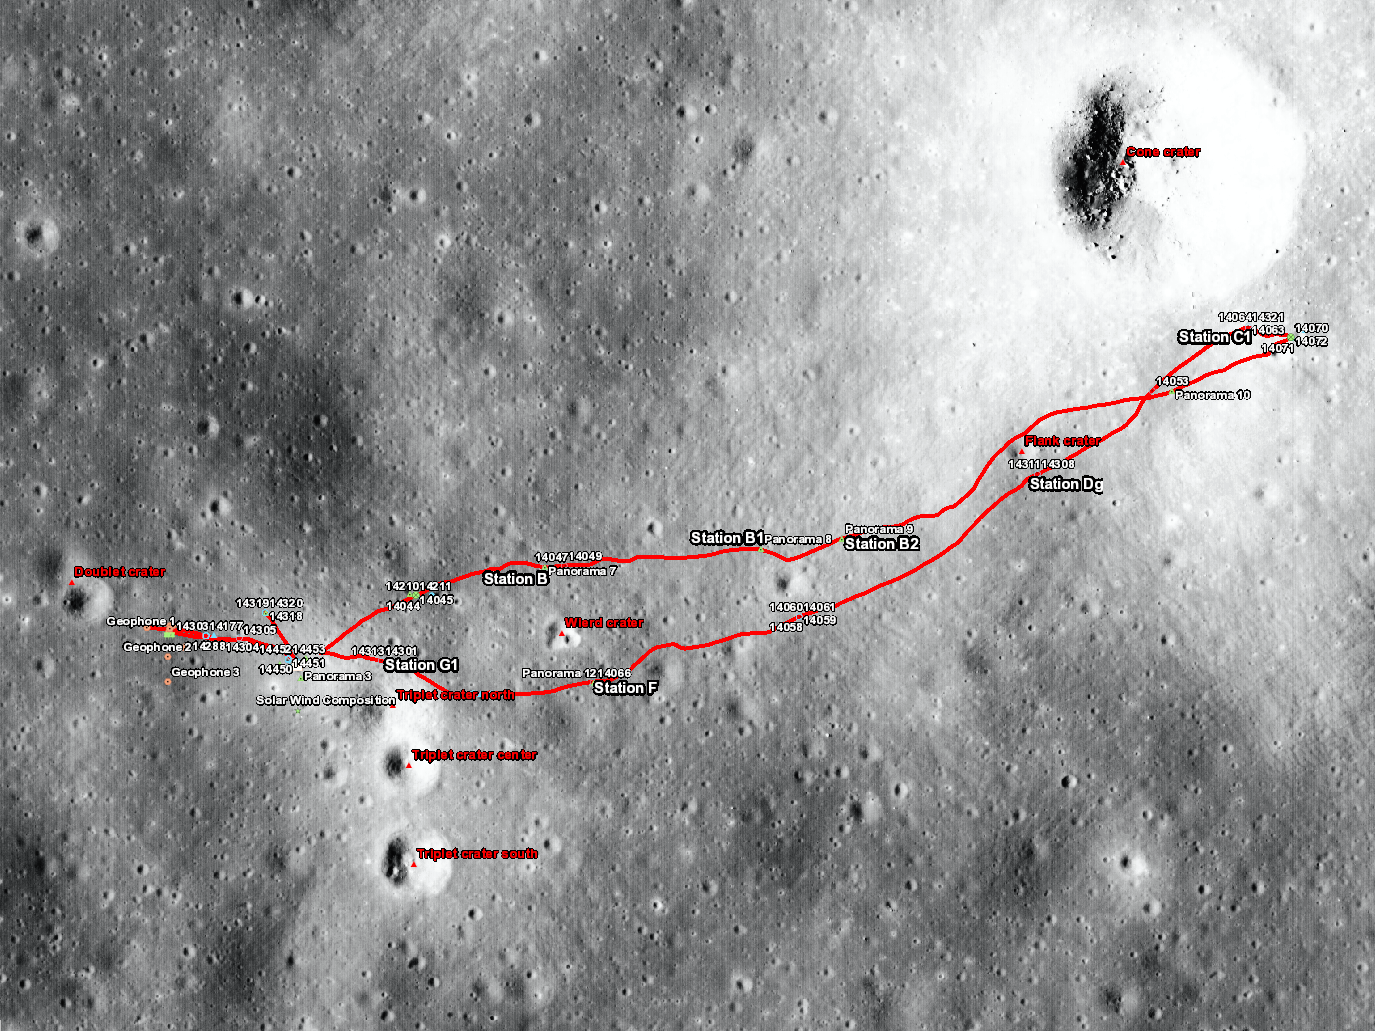 Apollo 14 sample locations